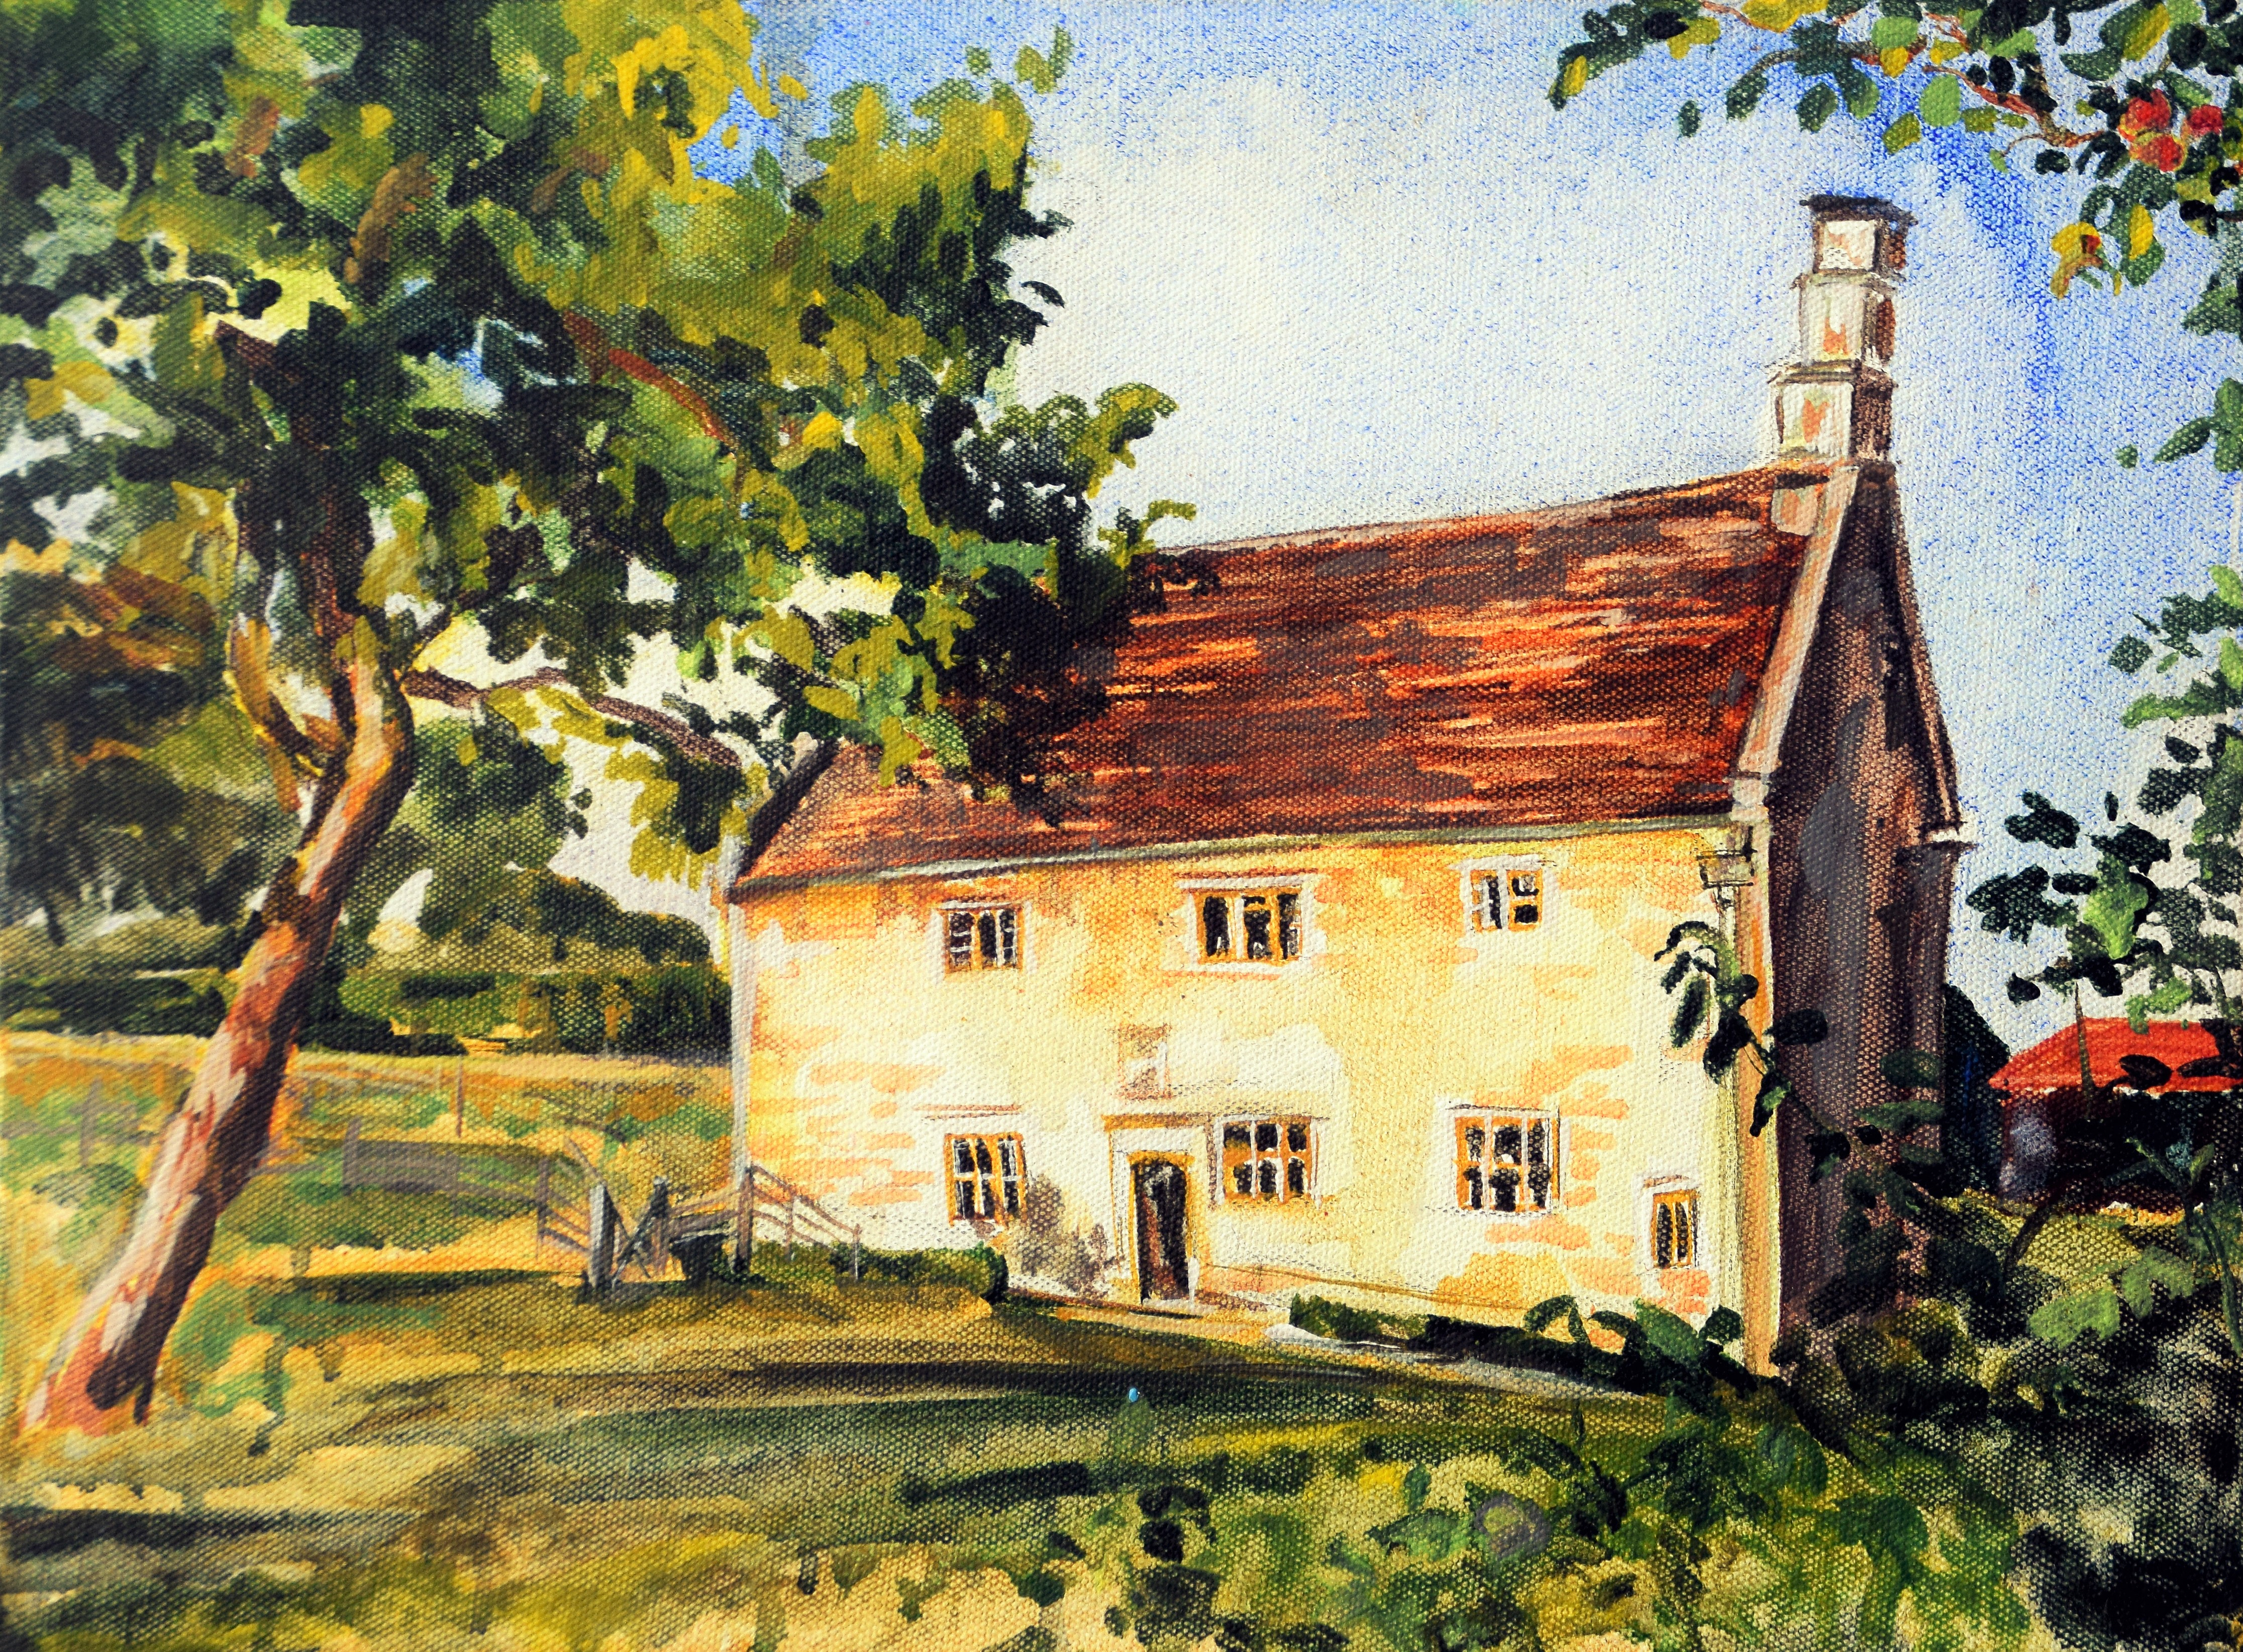 Newton's House & The Apple Tree